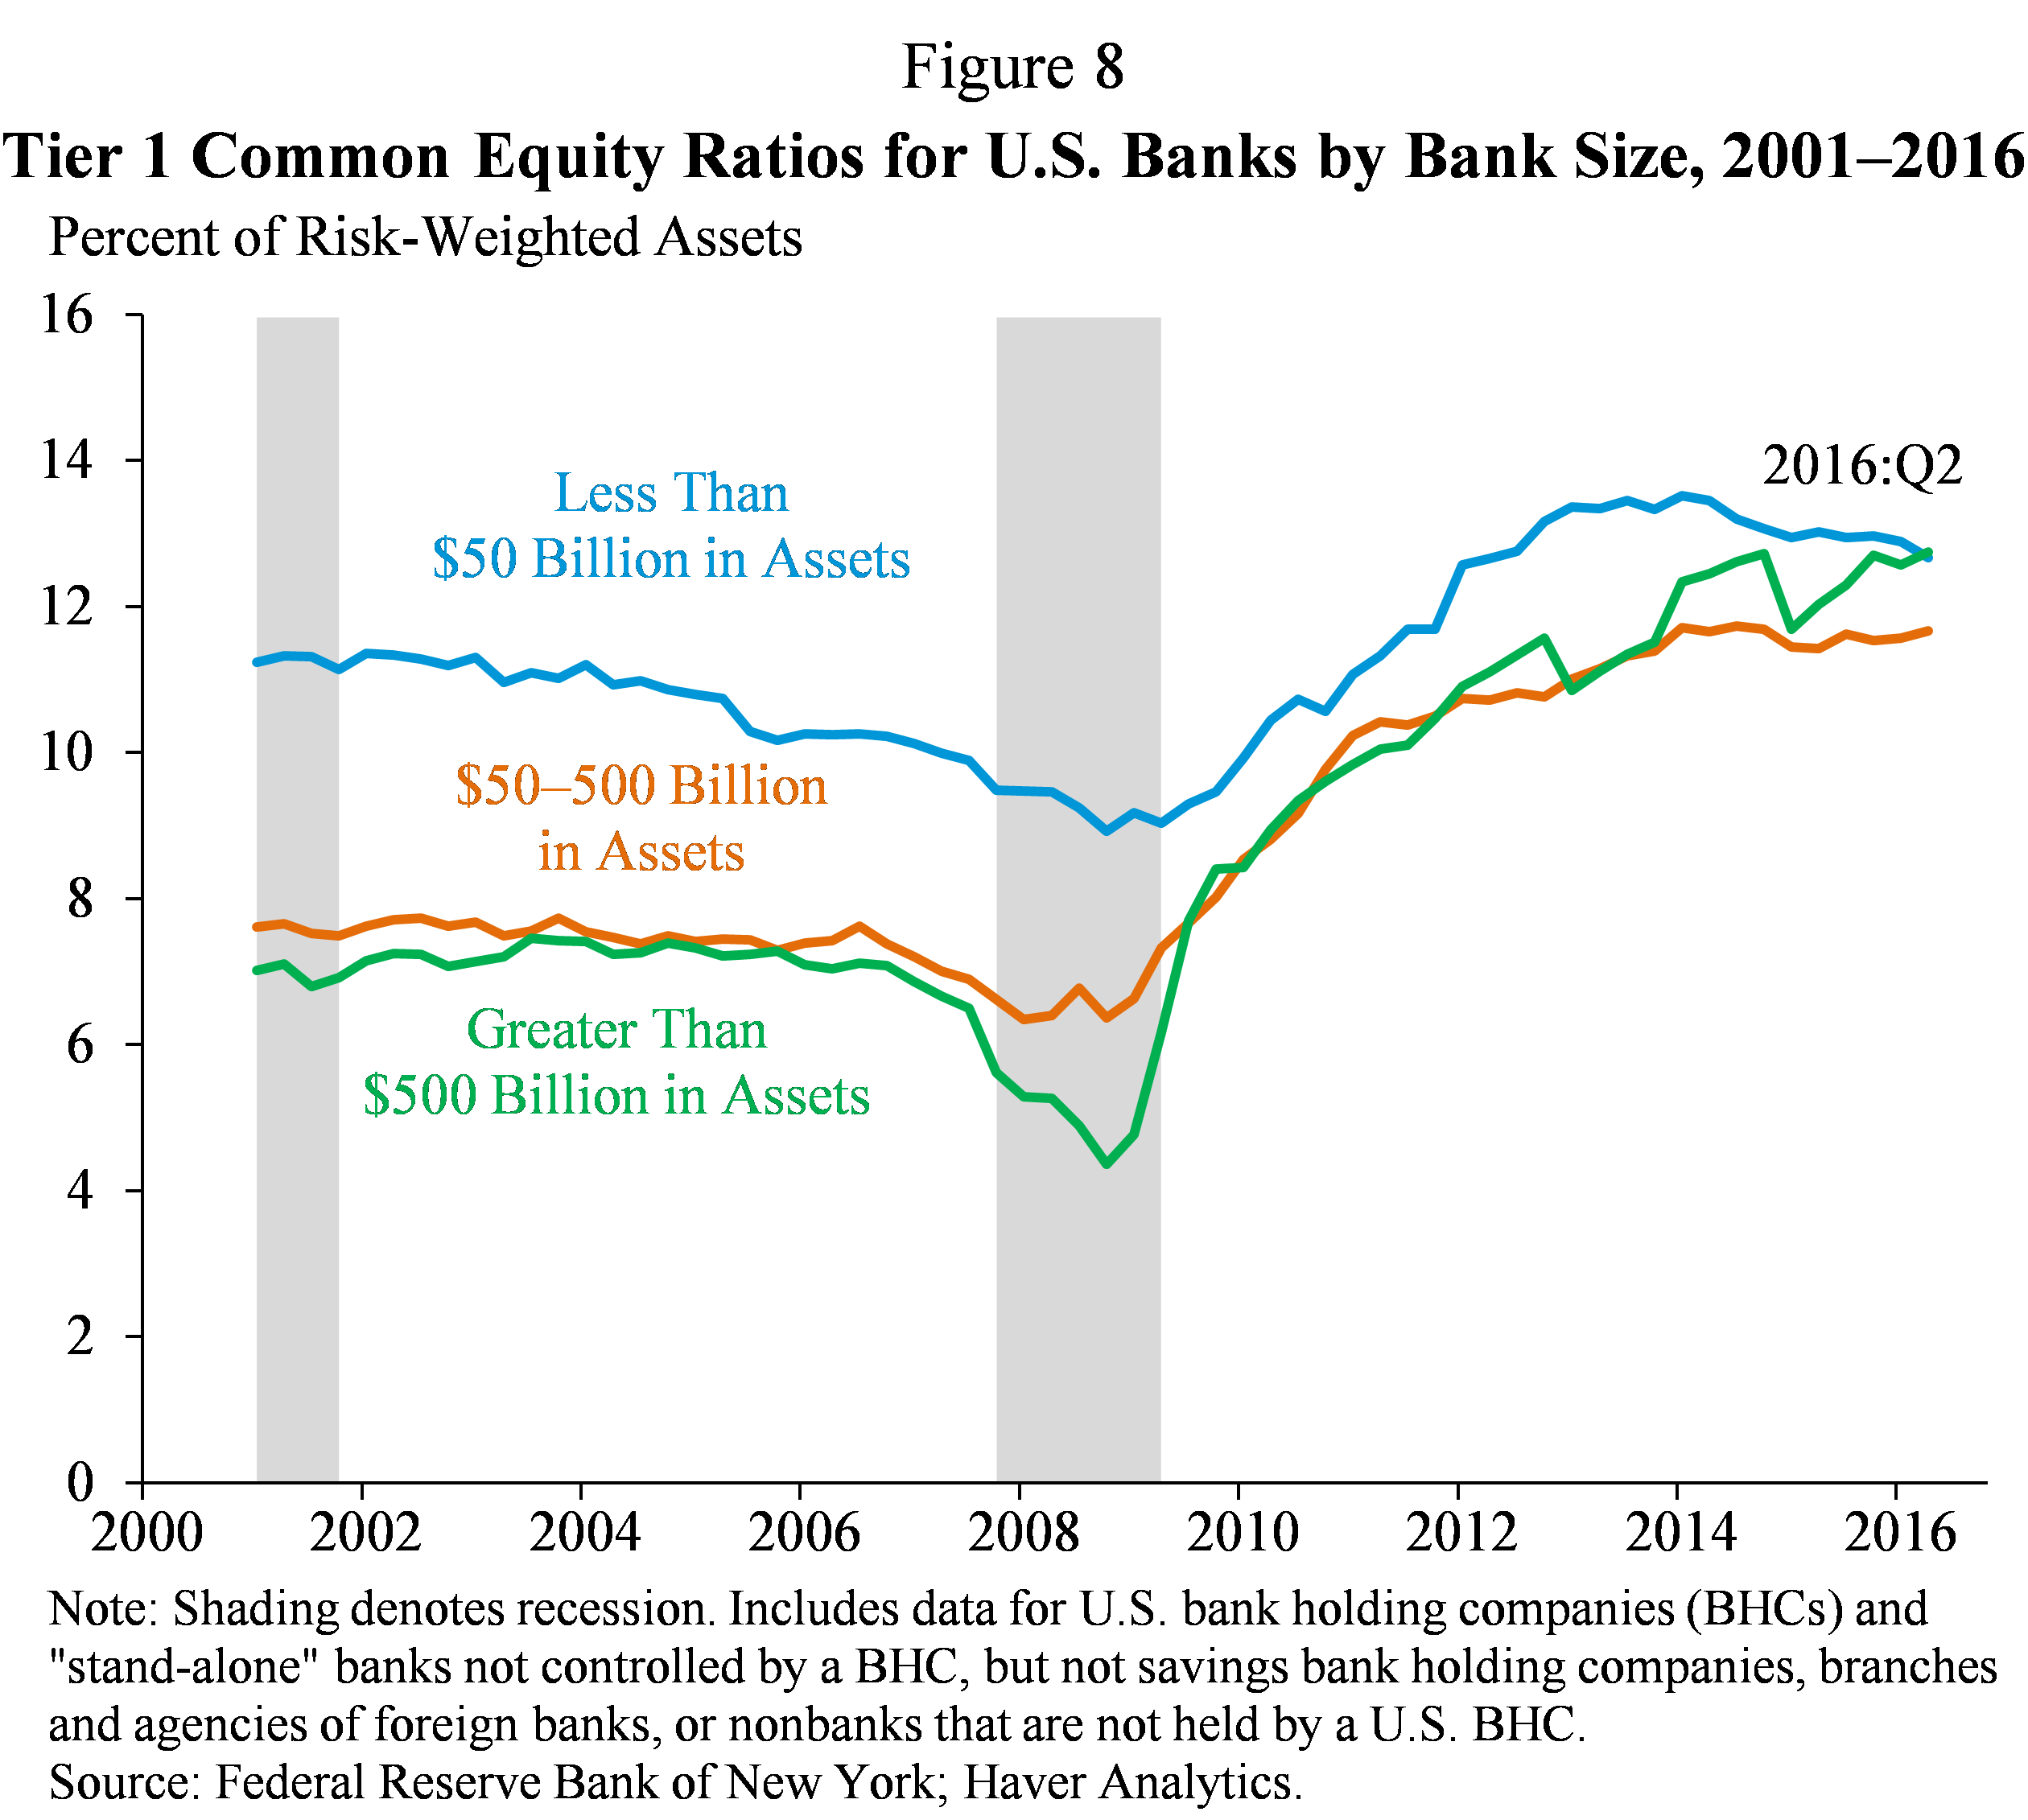 Figure 8.  Tier 1 Common Equity Ratios for U.S. Banks by Bank Size, 2001-2006